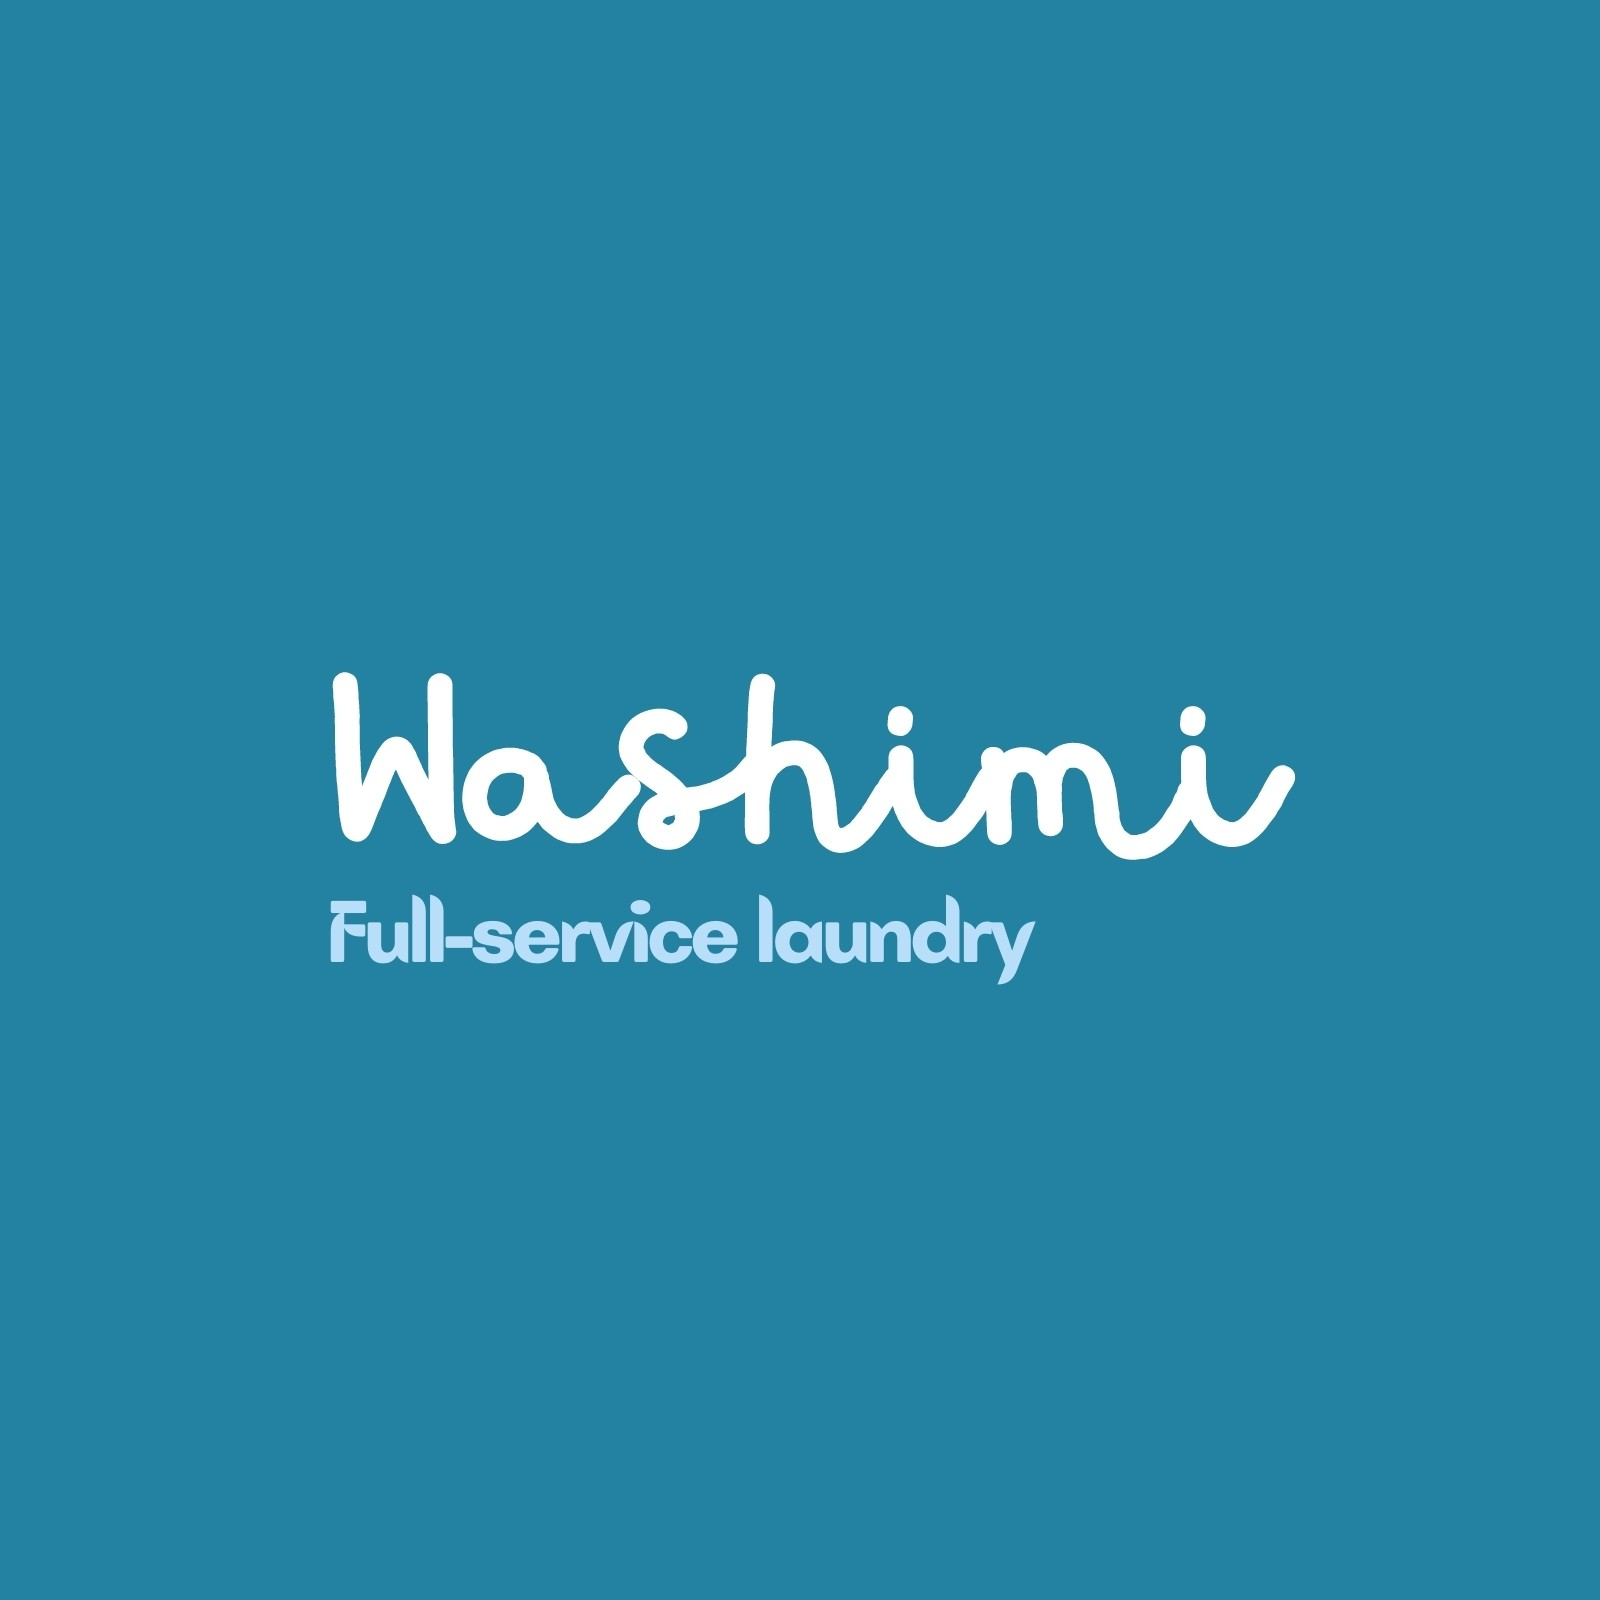 Blue and White Laundry Shop Logo